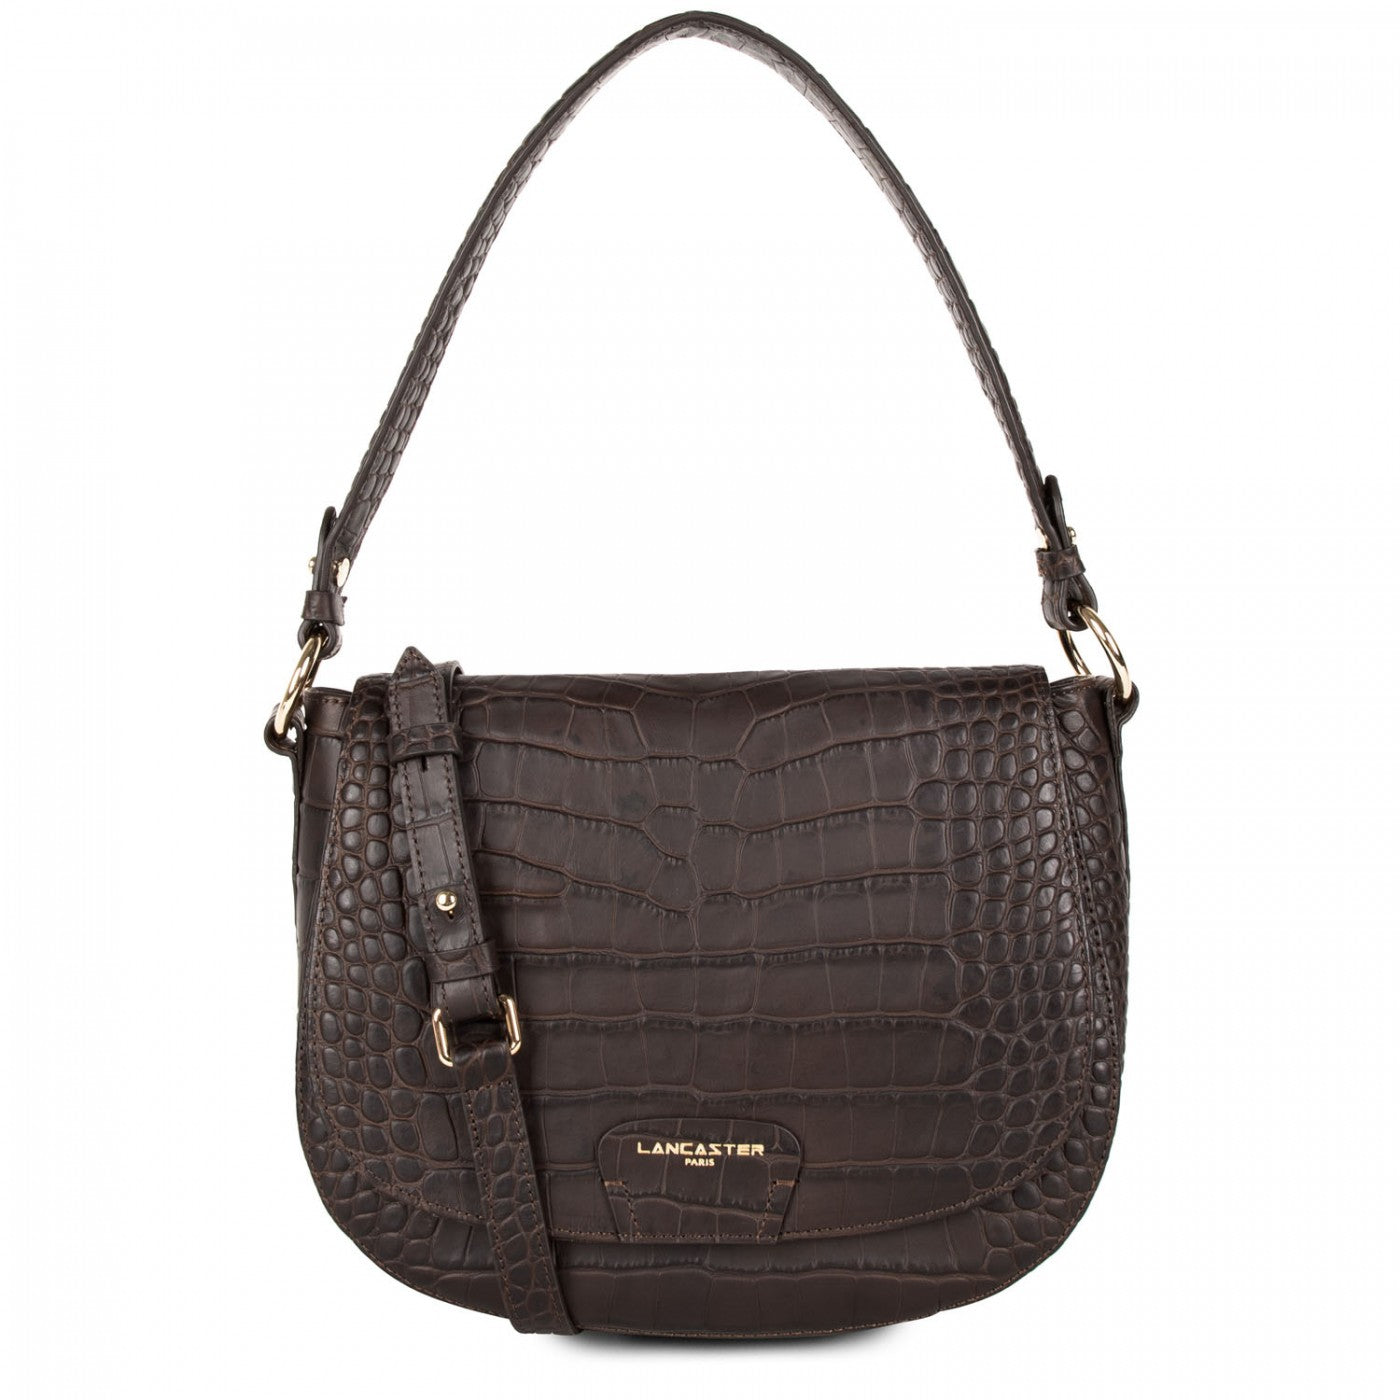 LANCASTER EXOTIC CROCO SOFT SHOULDER BAG